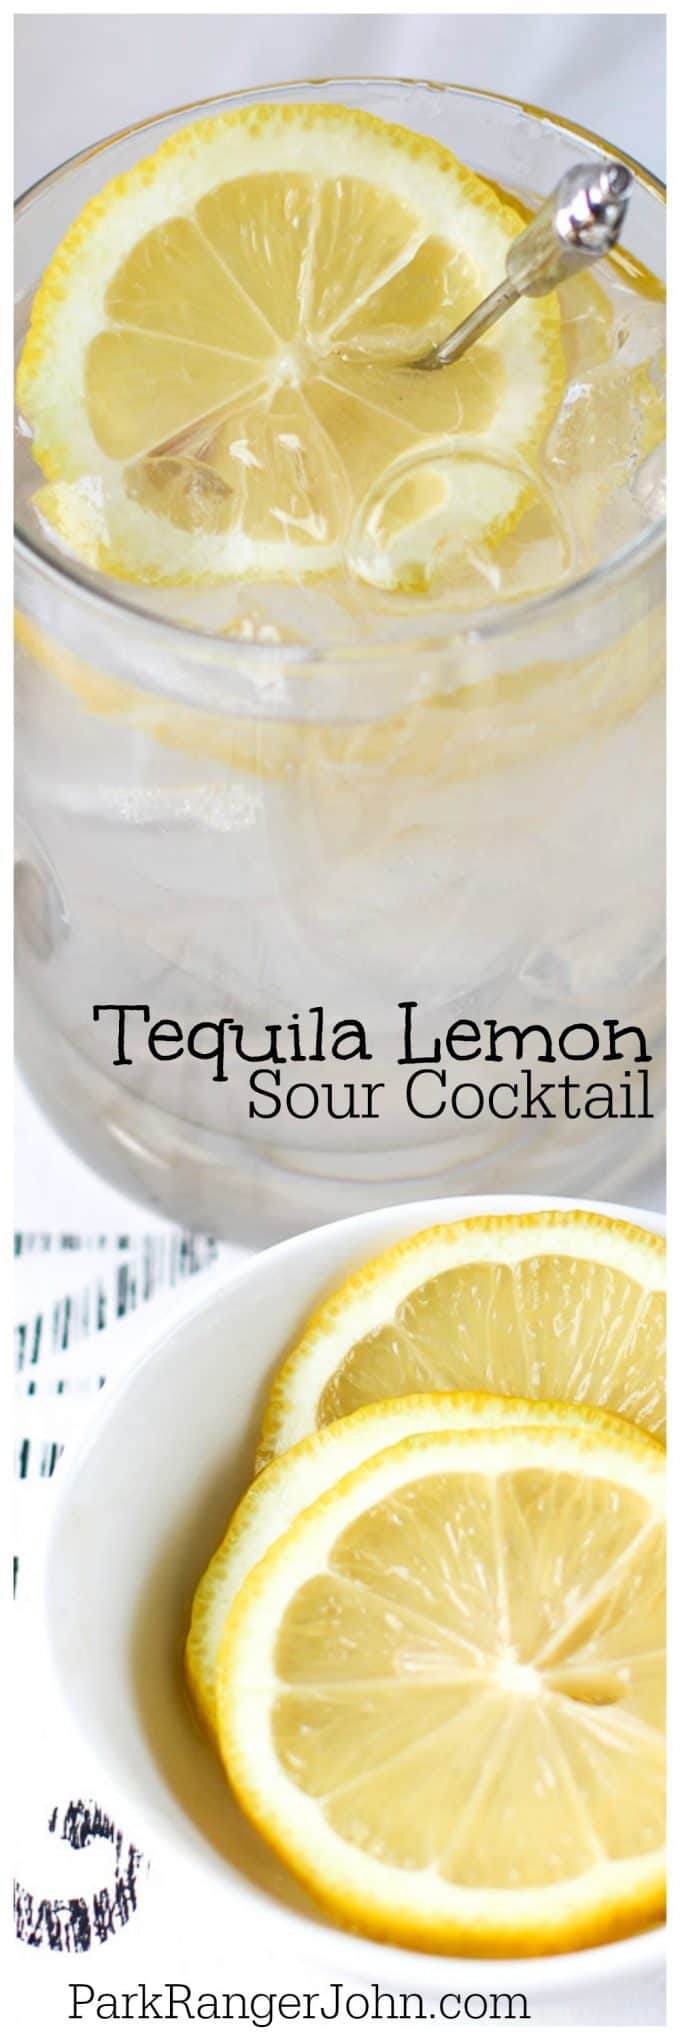 Tequila Lemon Sour Cocktail Recipe! The perfect summer drinks to enjoy.